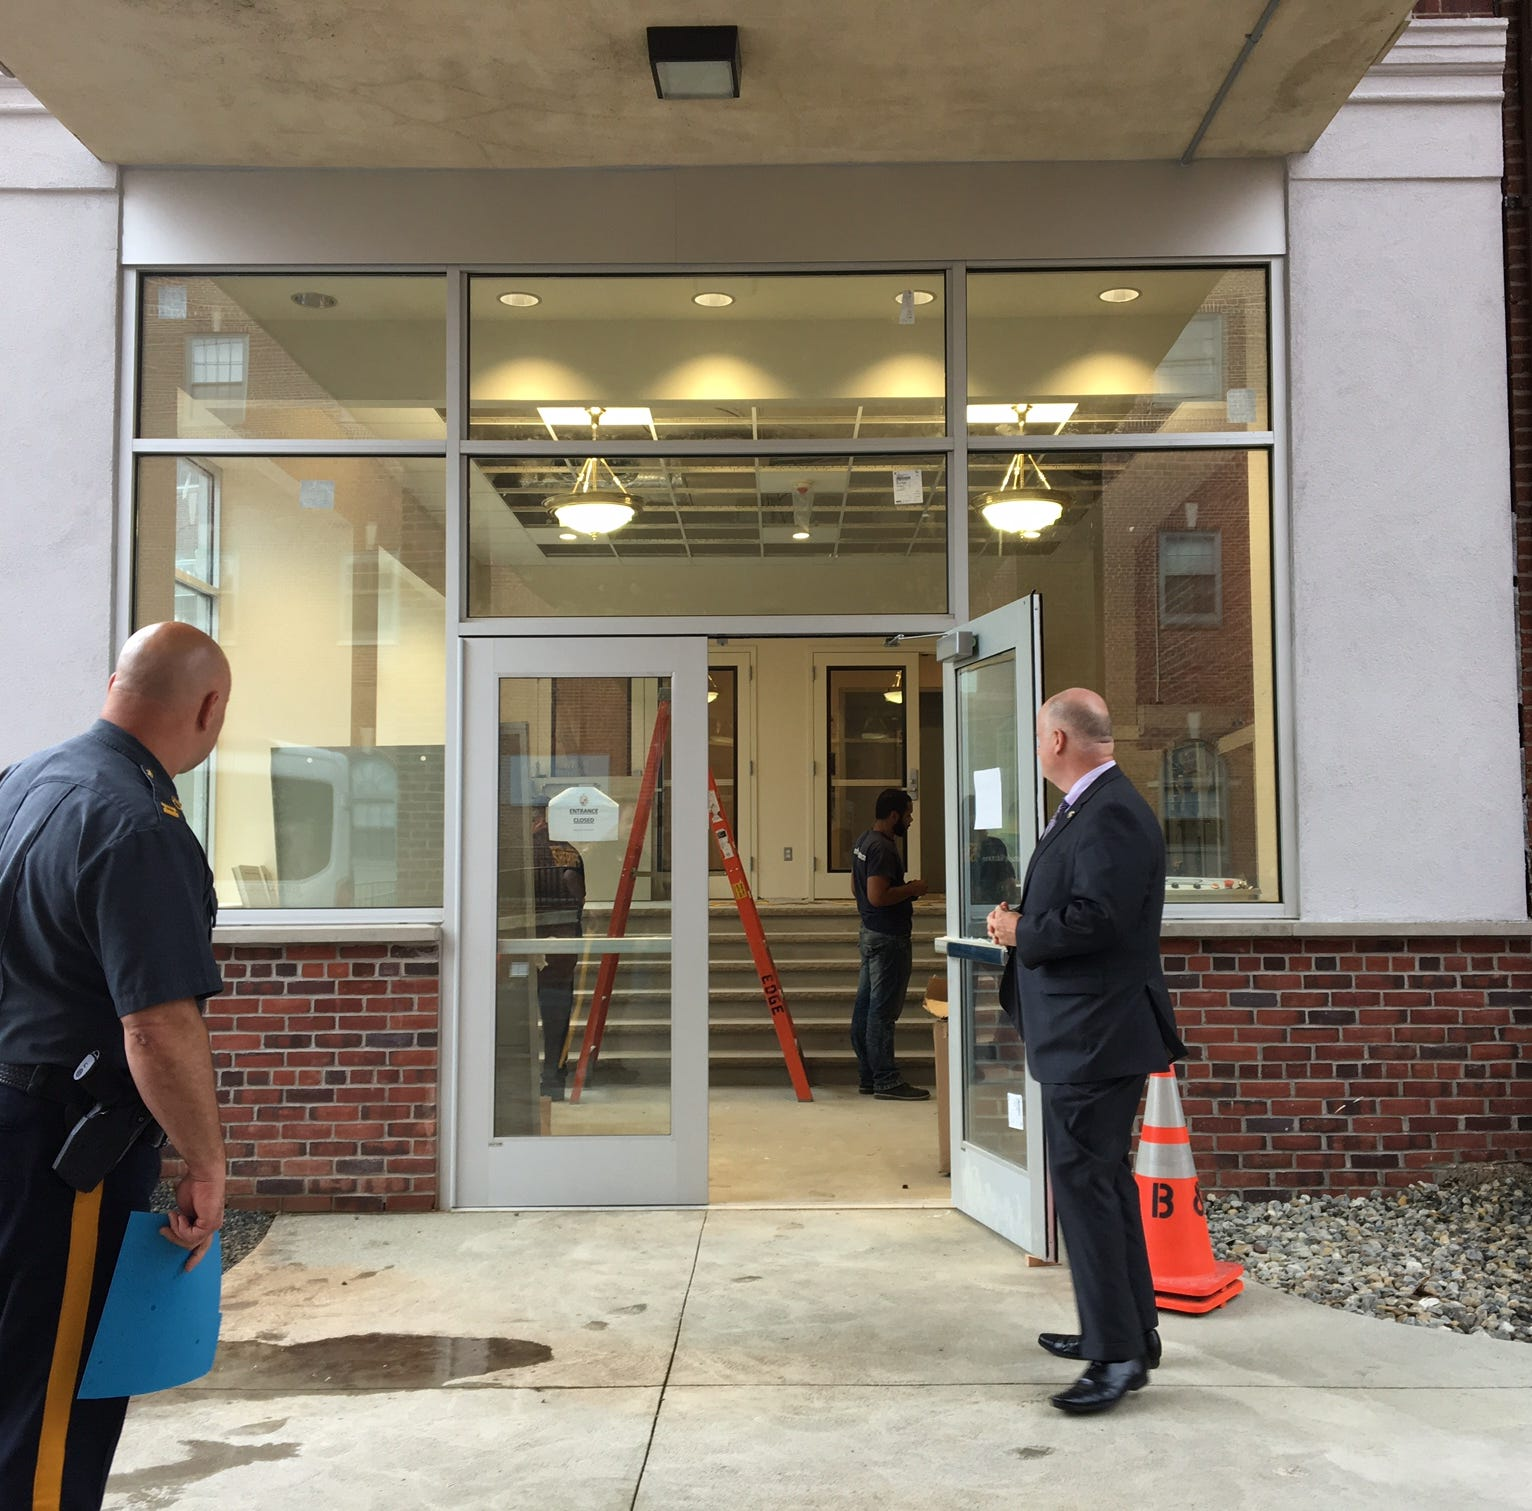 Morris County Sheriff James Gannon, R, and Capt. Gerald Pennino check the new entrance to the county courthouse, expected to open in about one week